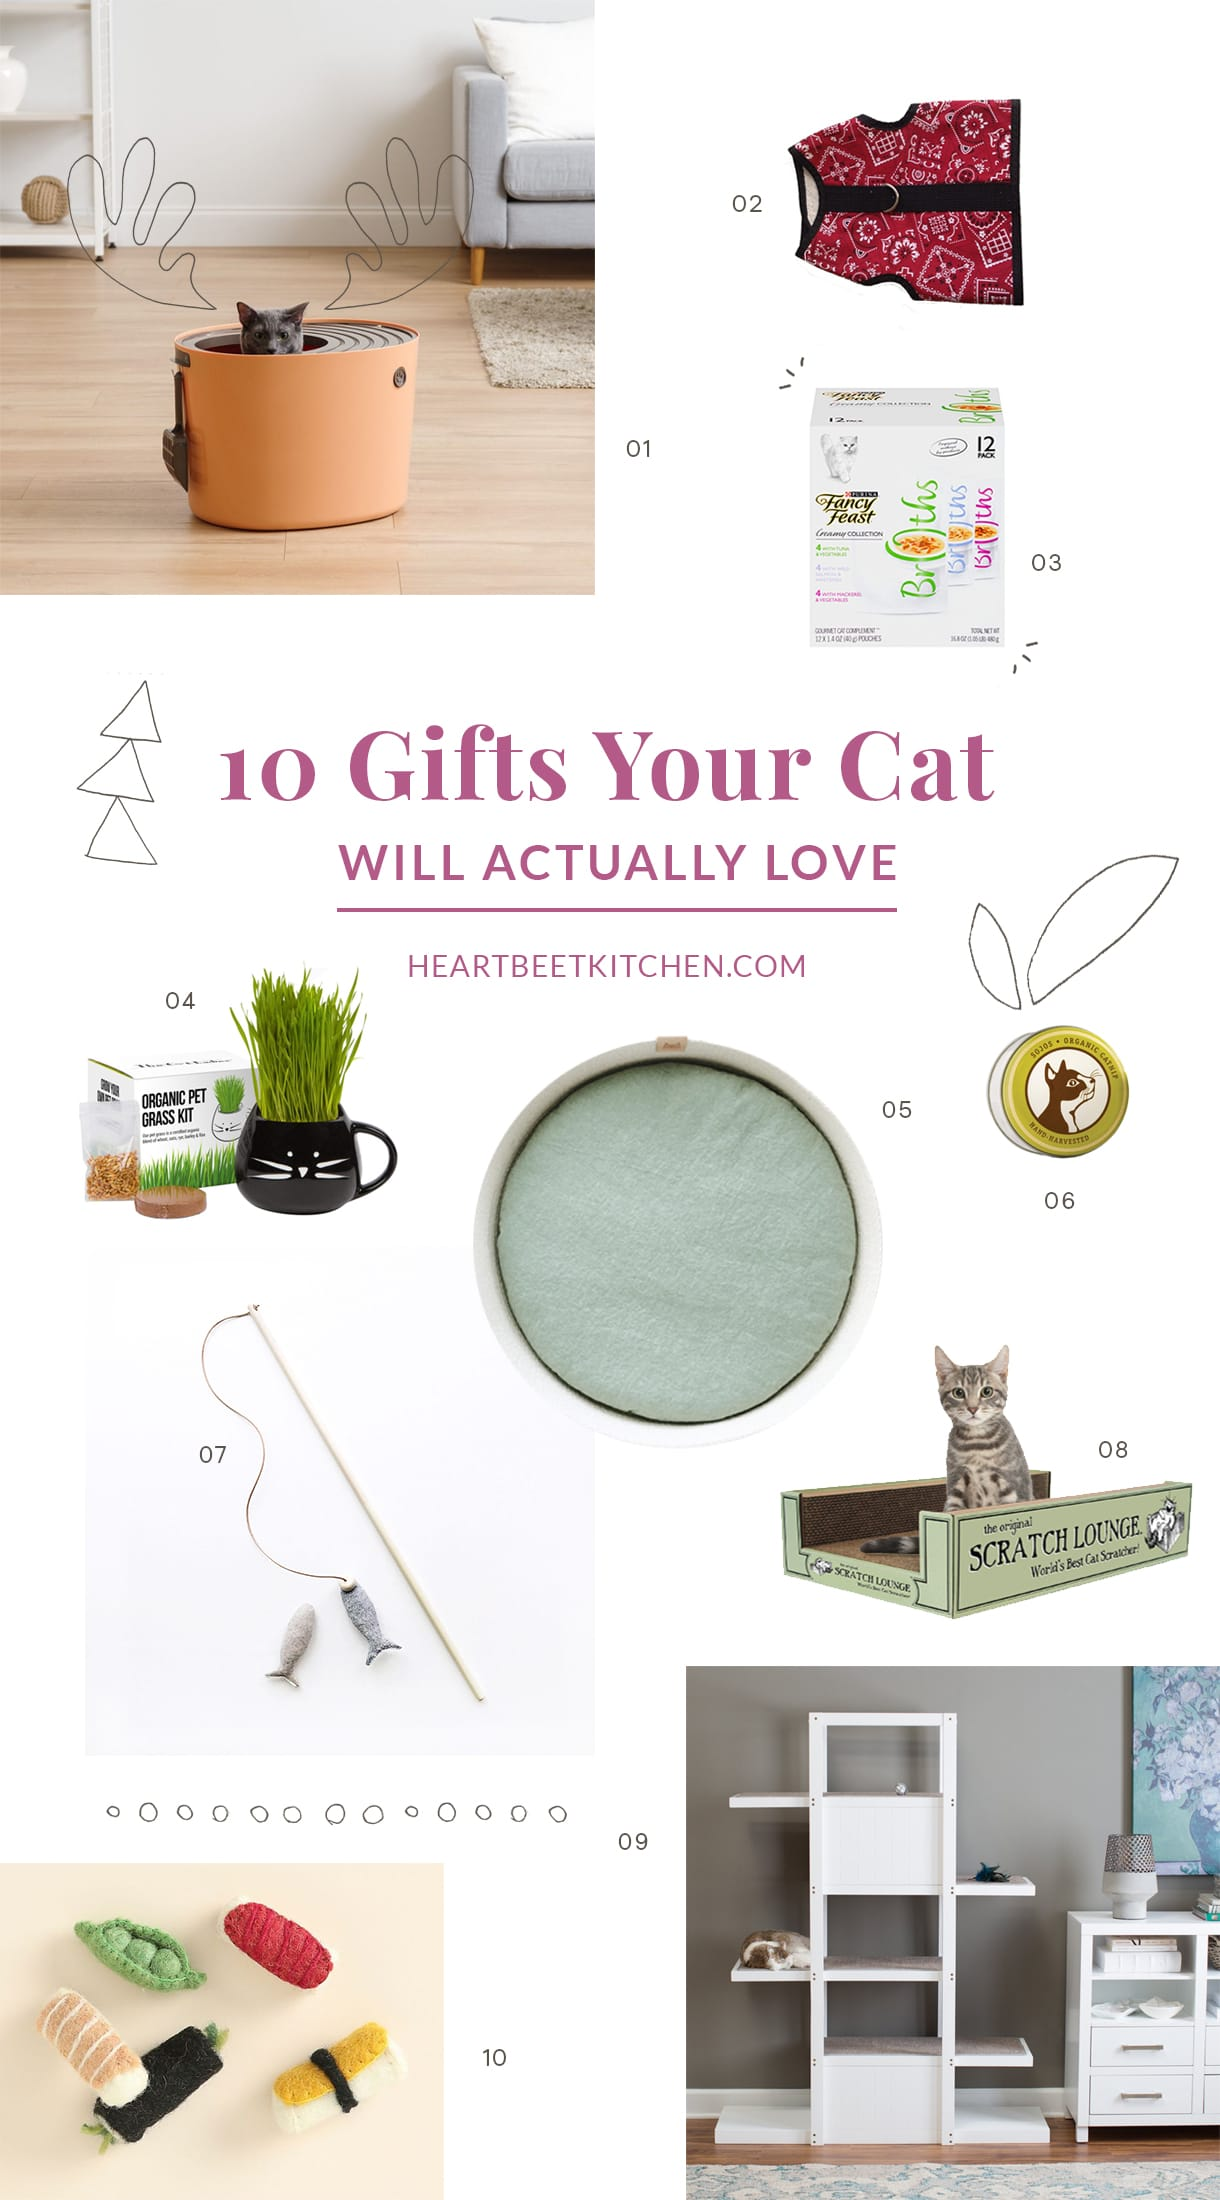 Top 10 Gifts For Cats, Gifts Your Cat will Actually Love